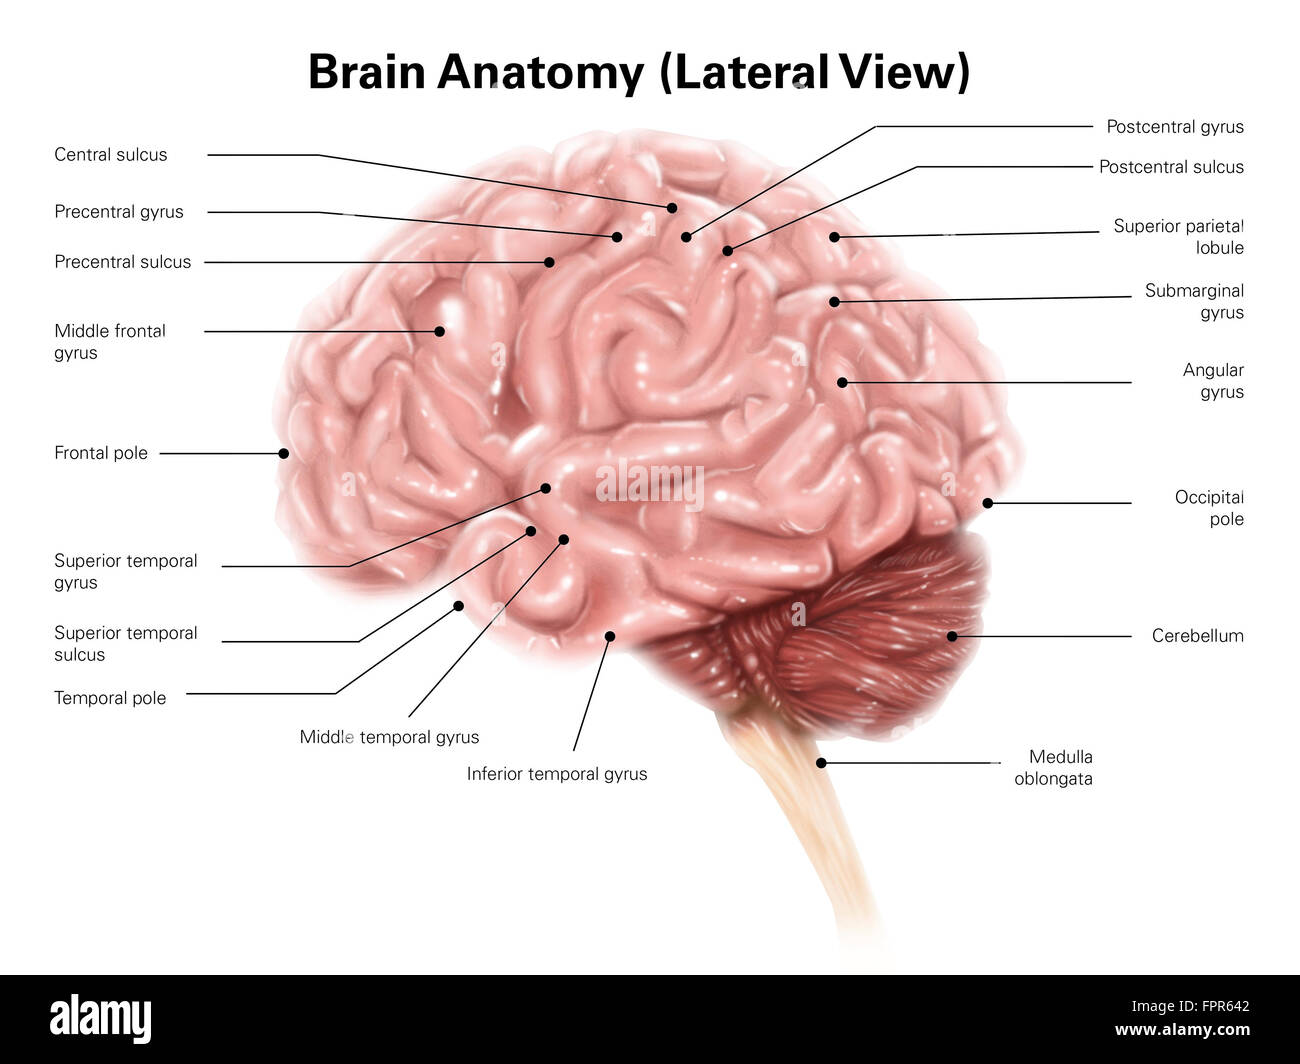 plications together with M46646 likewise Hypoxia additionally R Aica Pica Stroke Vasc Conference in addition Hypoxia. on decreased blood supply to the brain